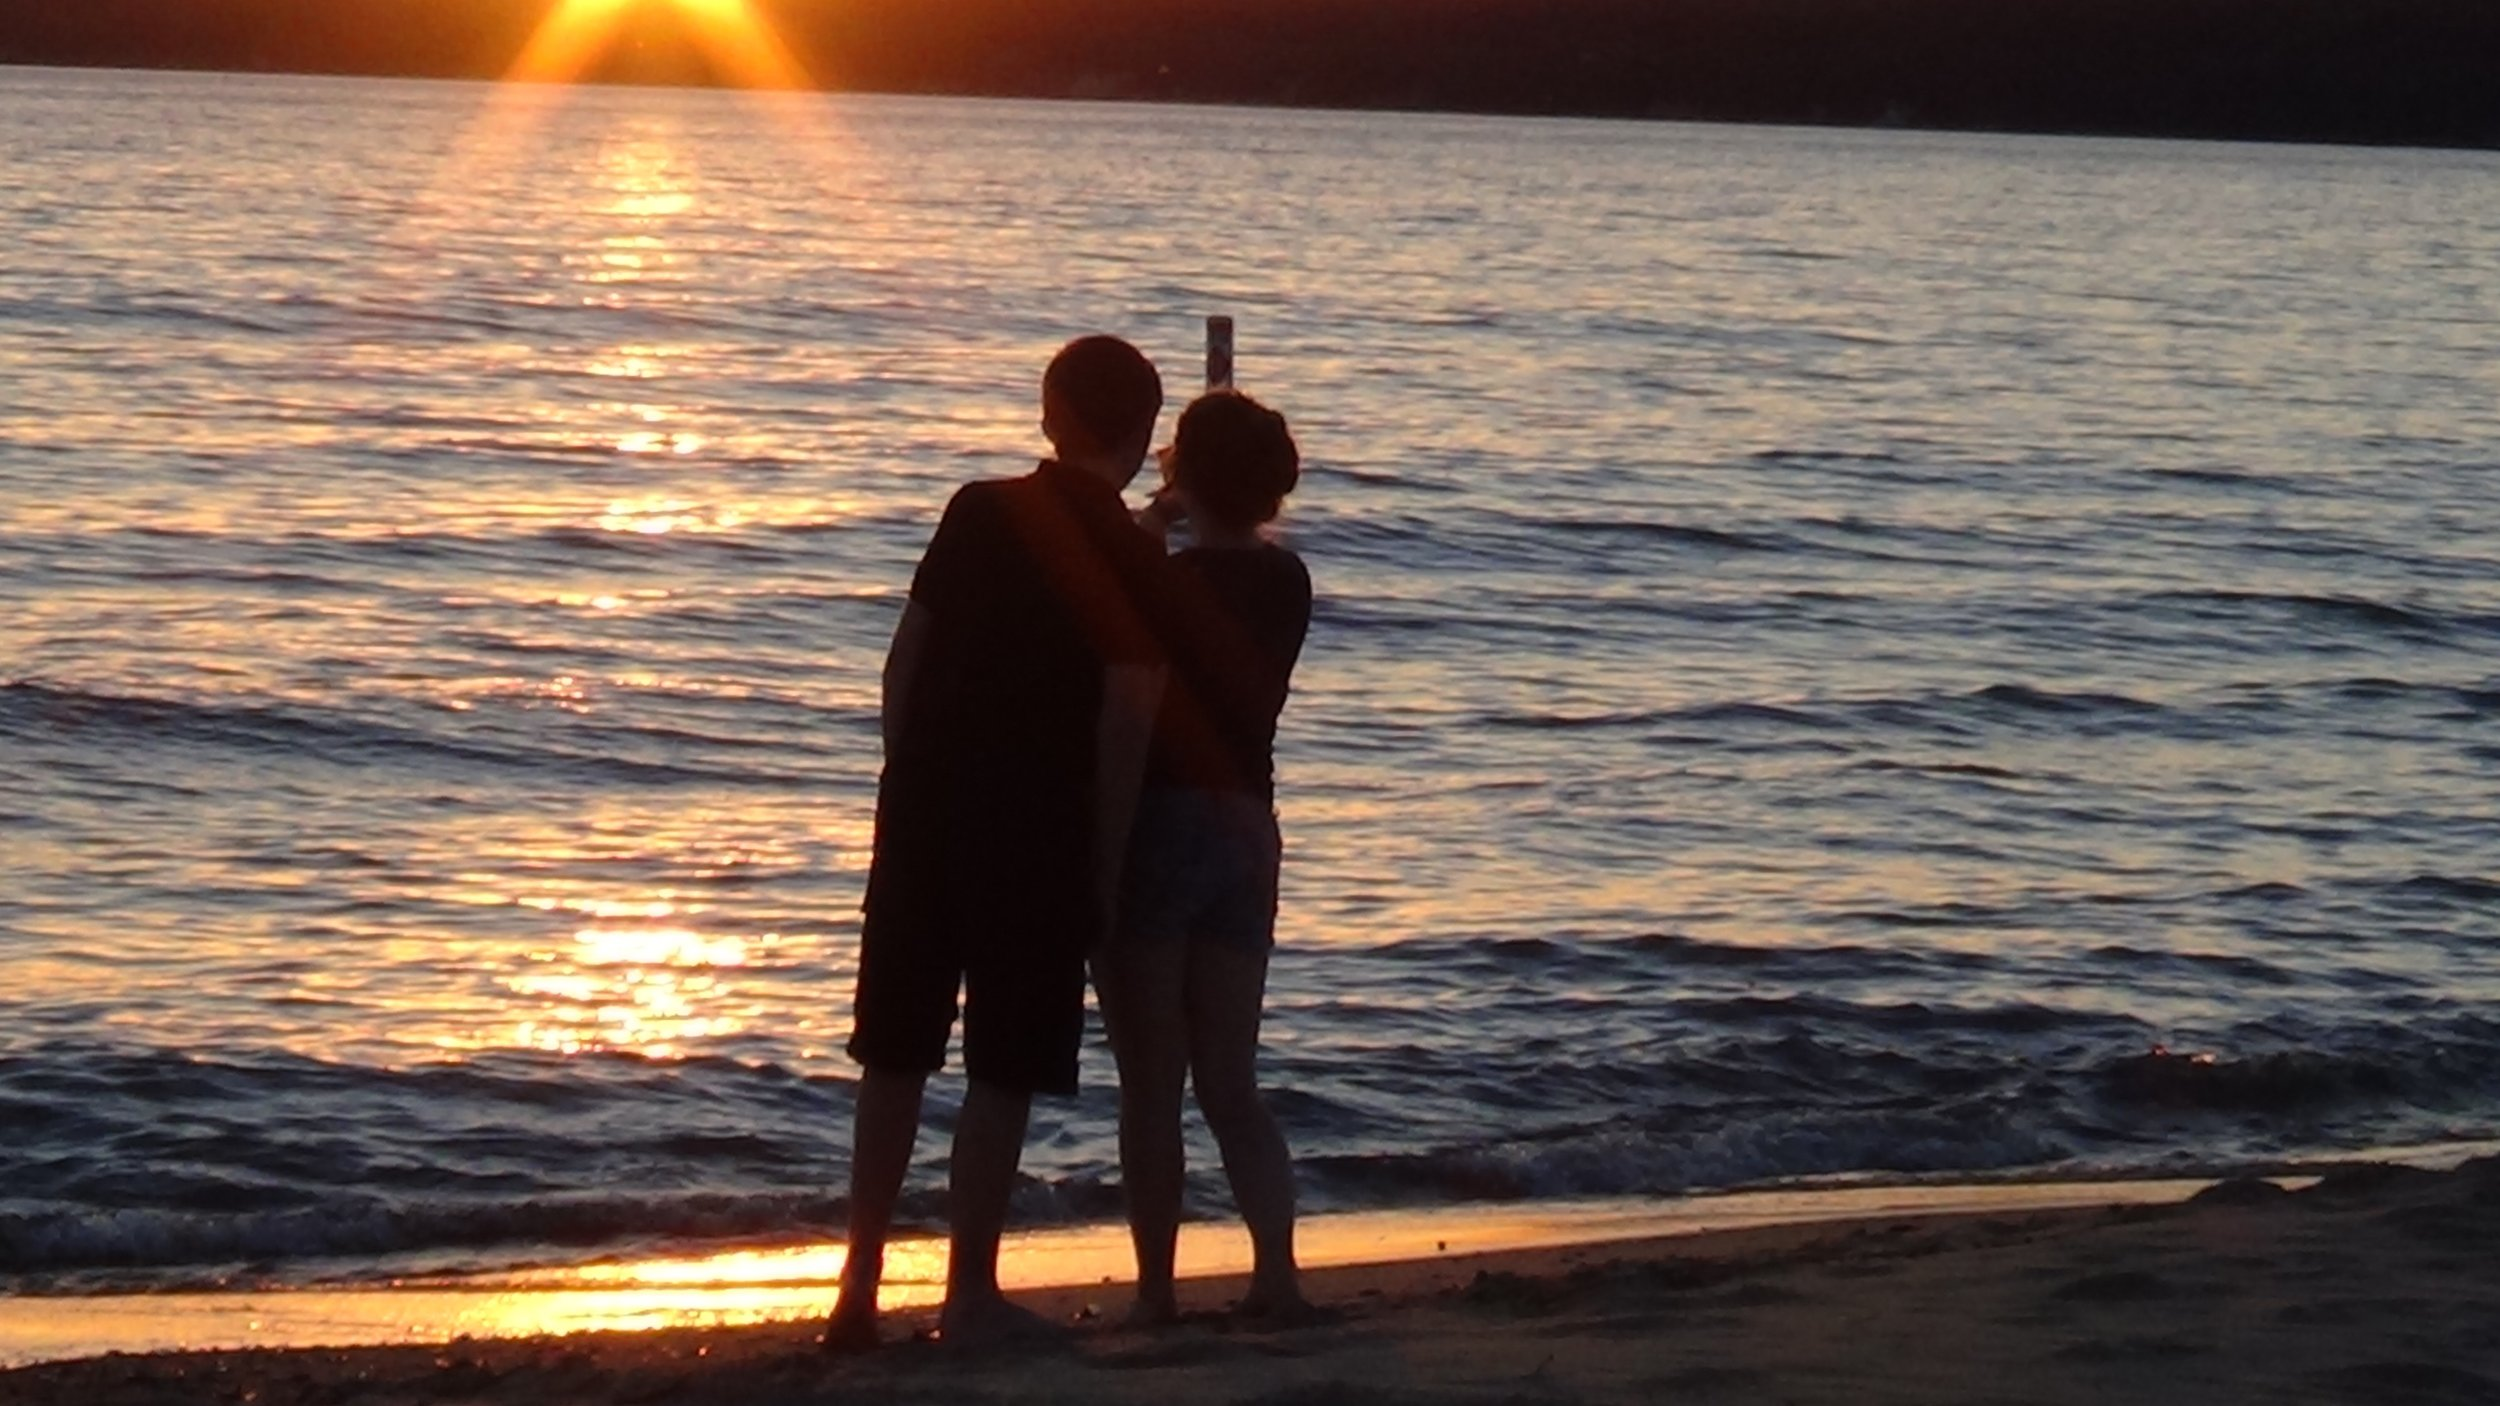 The sun setting at petoskey state park